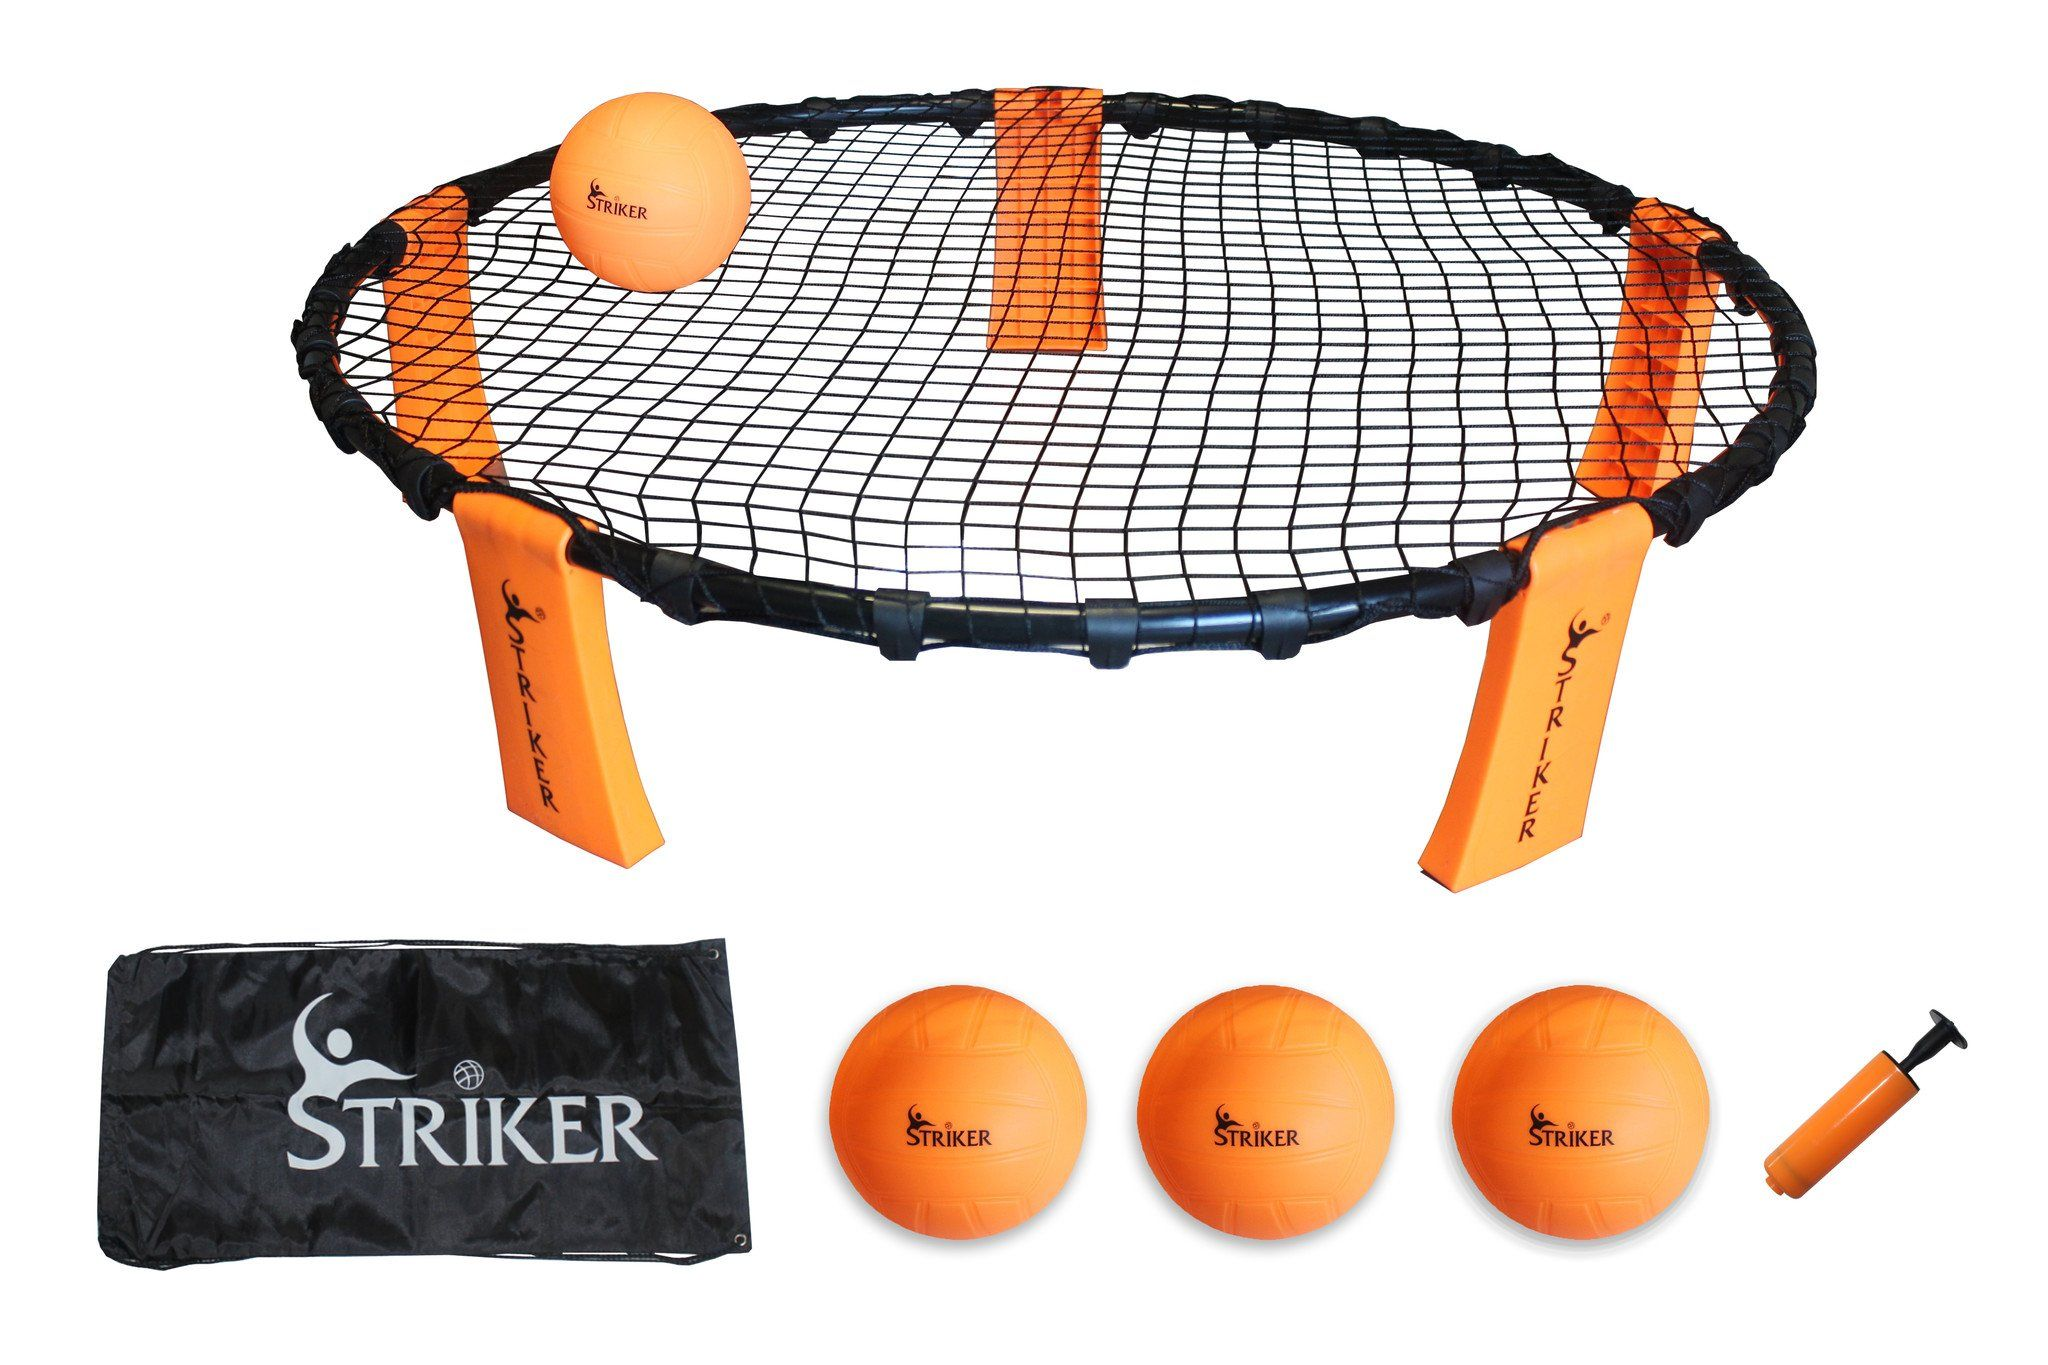 Striker Includes Target 3 Balls Carrying Bag Pump Manual Exciting Fast Paced Outdoor Lawn Game Portable Pe Spike Game Fun Games For Kids Kit Games